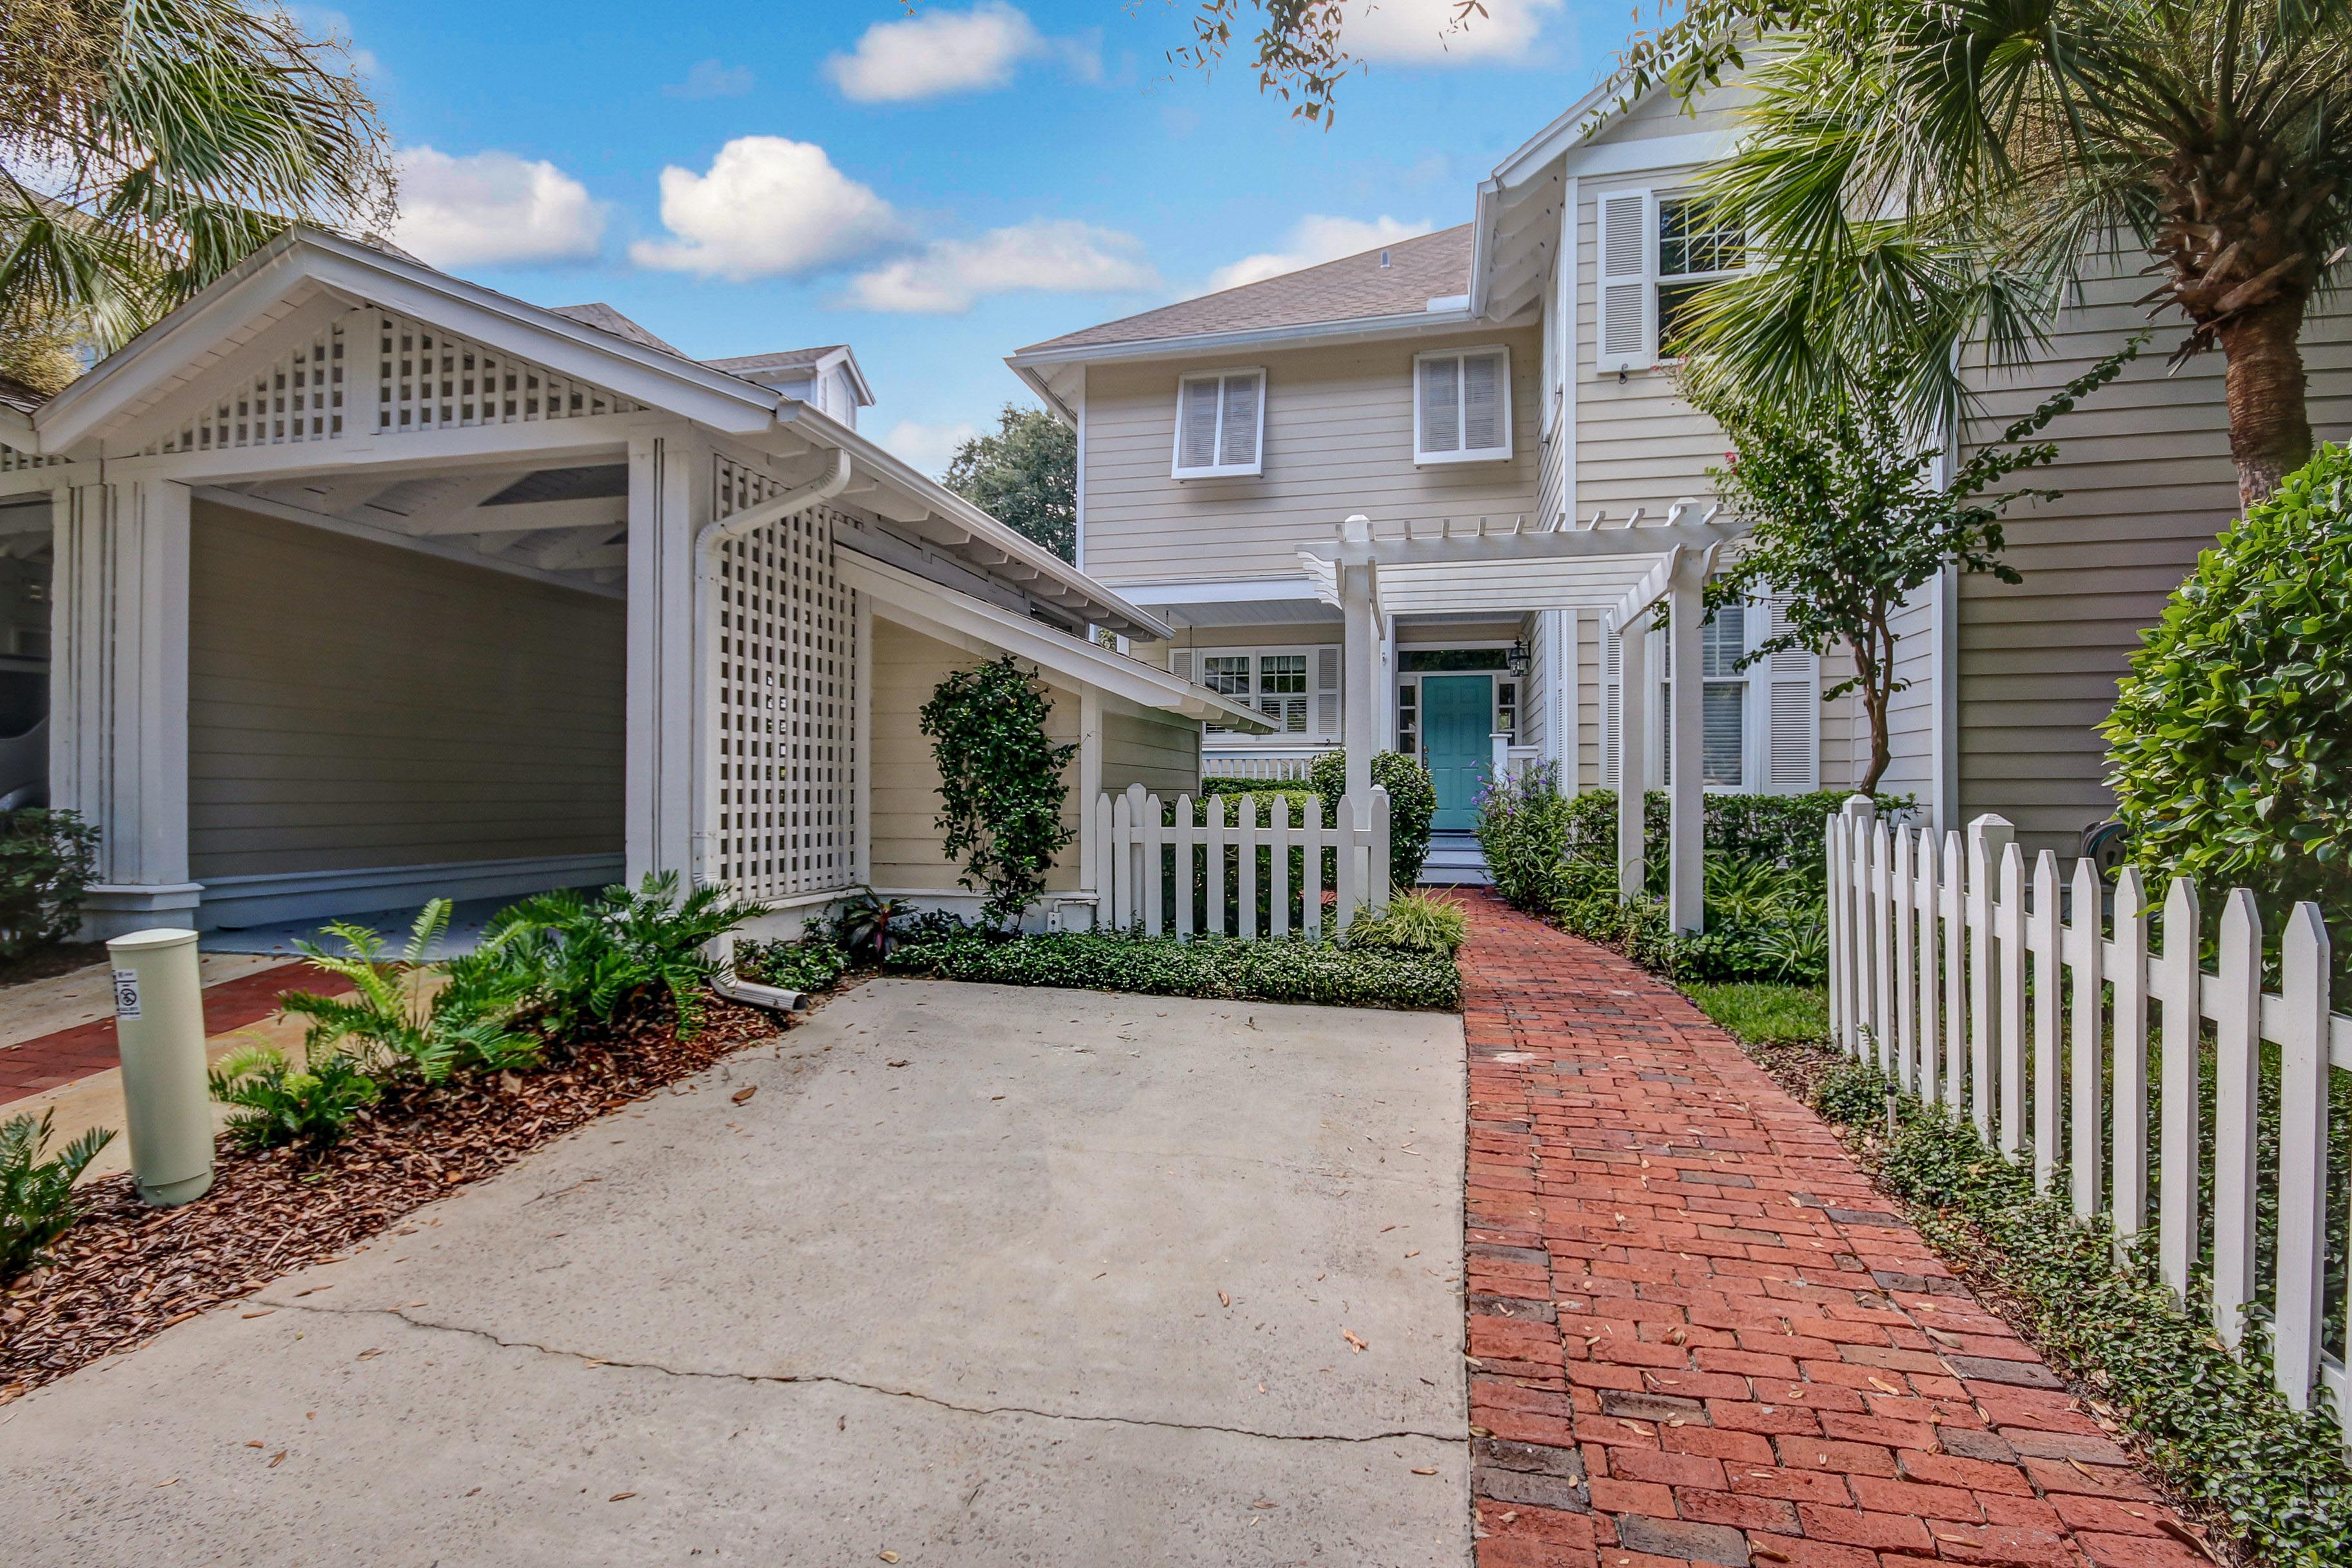 Townhouse for Sale at Golf Front Plantation Home 19 Little Dunes Circle Amelia Island, Florida, 32034 United States